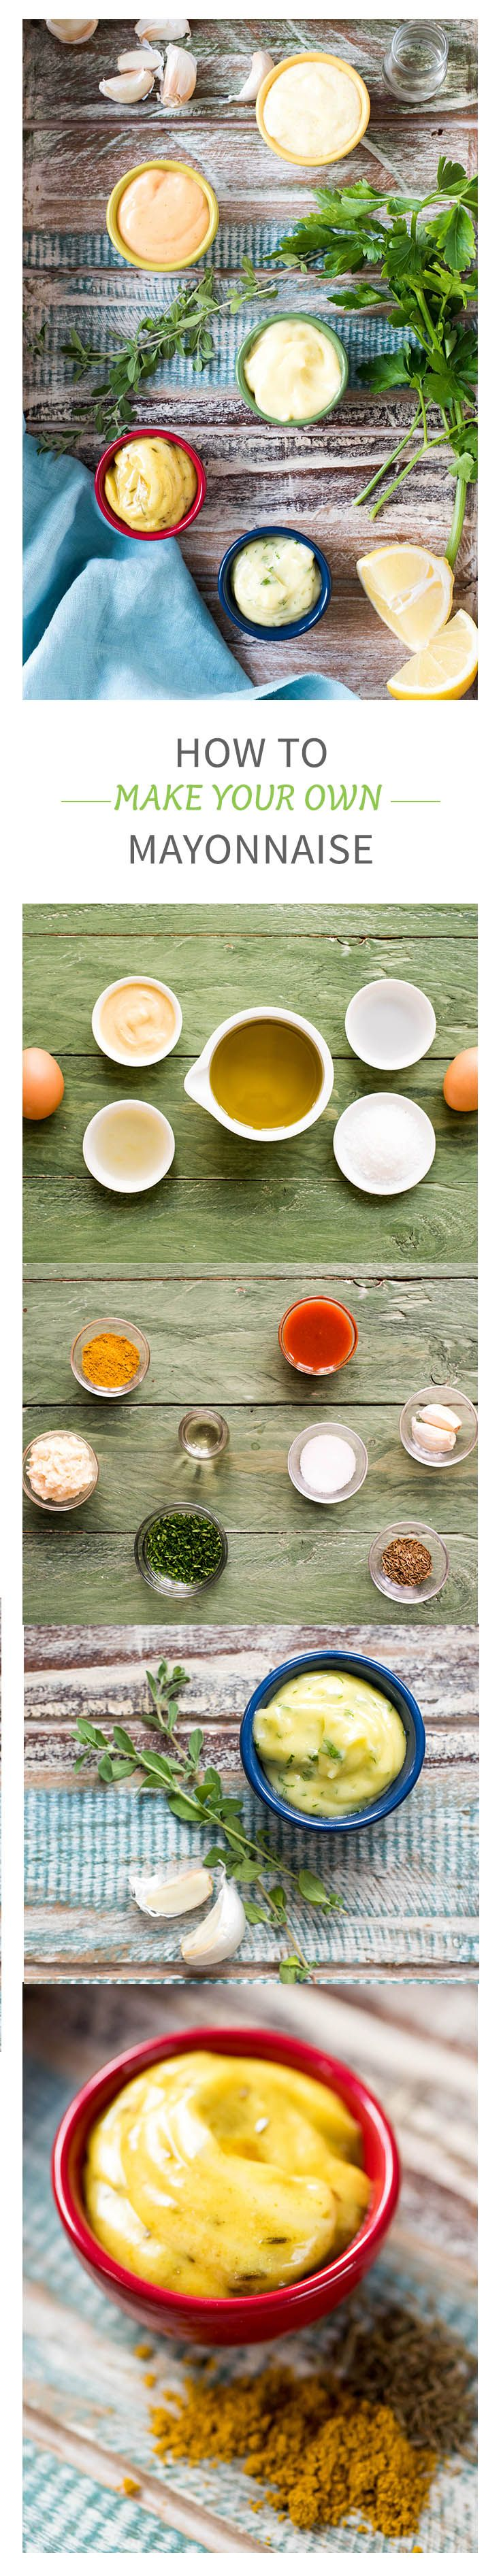 Ask us what ingredient we don't buy anymore at the store, and we will tell you: MAYONNAISE! Making your own mayo is super easy. You can also add spices, garlic and herbs so that it fits your taste! Check our easy recipe on blog.hellofresh.com  #HelloFreshTips #HelloFresh #Mayo #Mayonnaise #Curry #Garlic #Herbs #Miso #HotSauce #Sauce #DIY